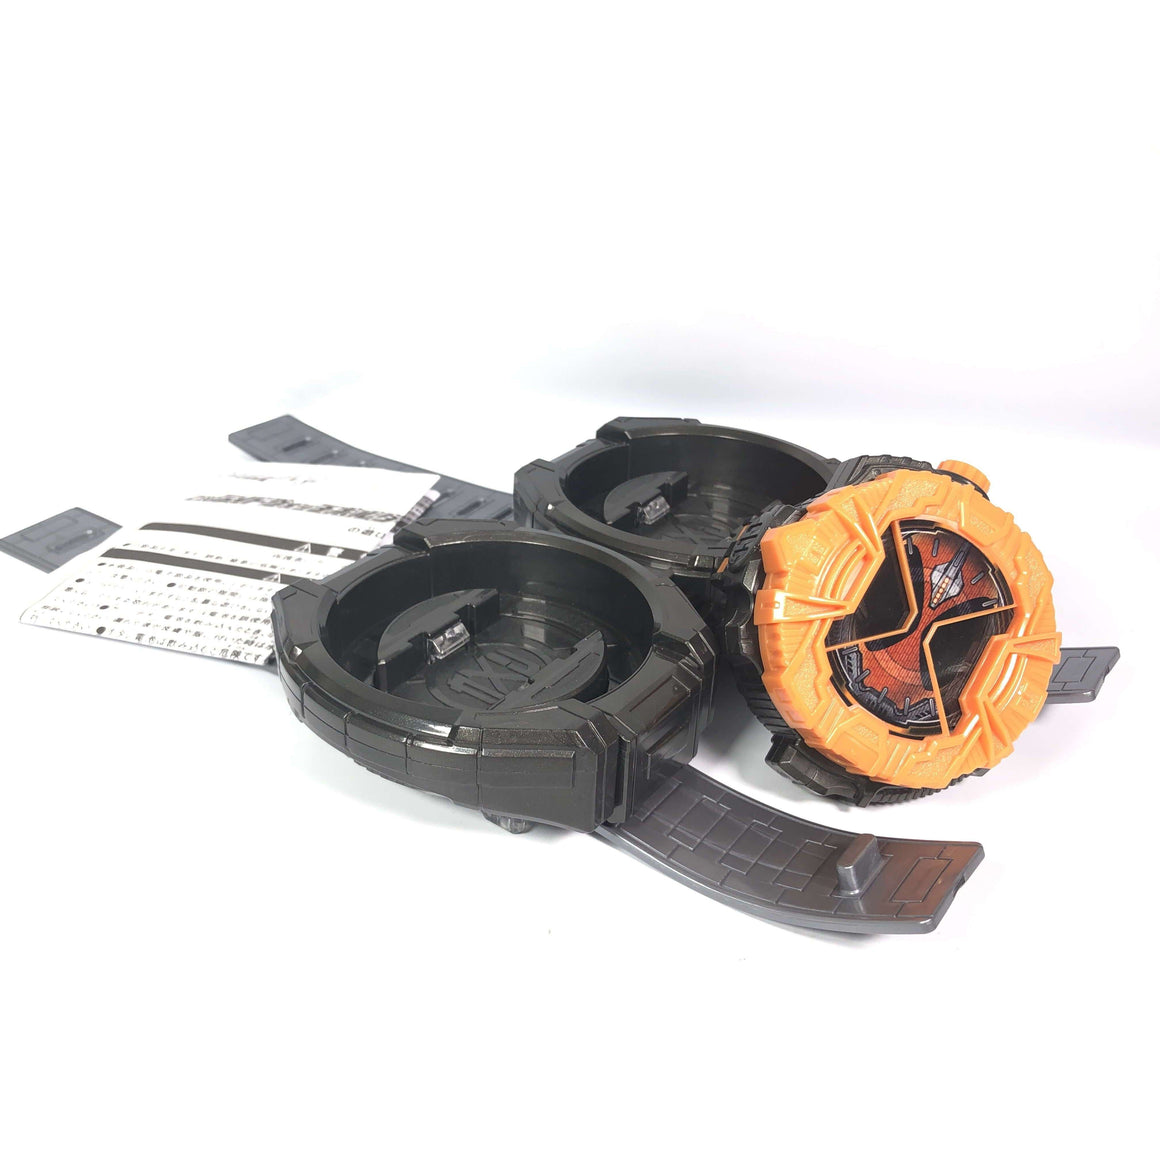 CSTOYS INTERNATIONAL:3000000418703[LOOSE]Kamen Rider Zi-O: DX Ride Watch Holder